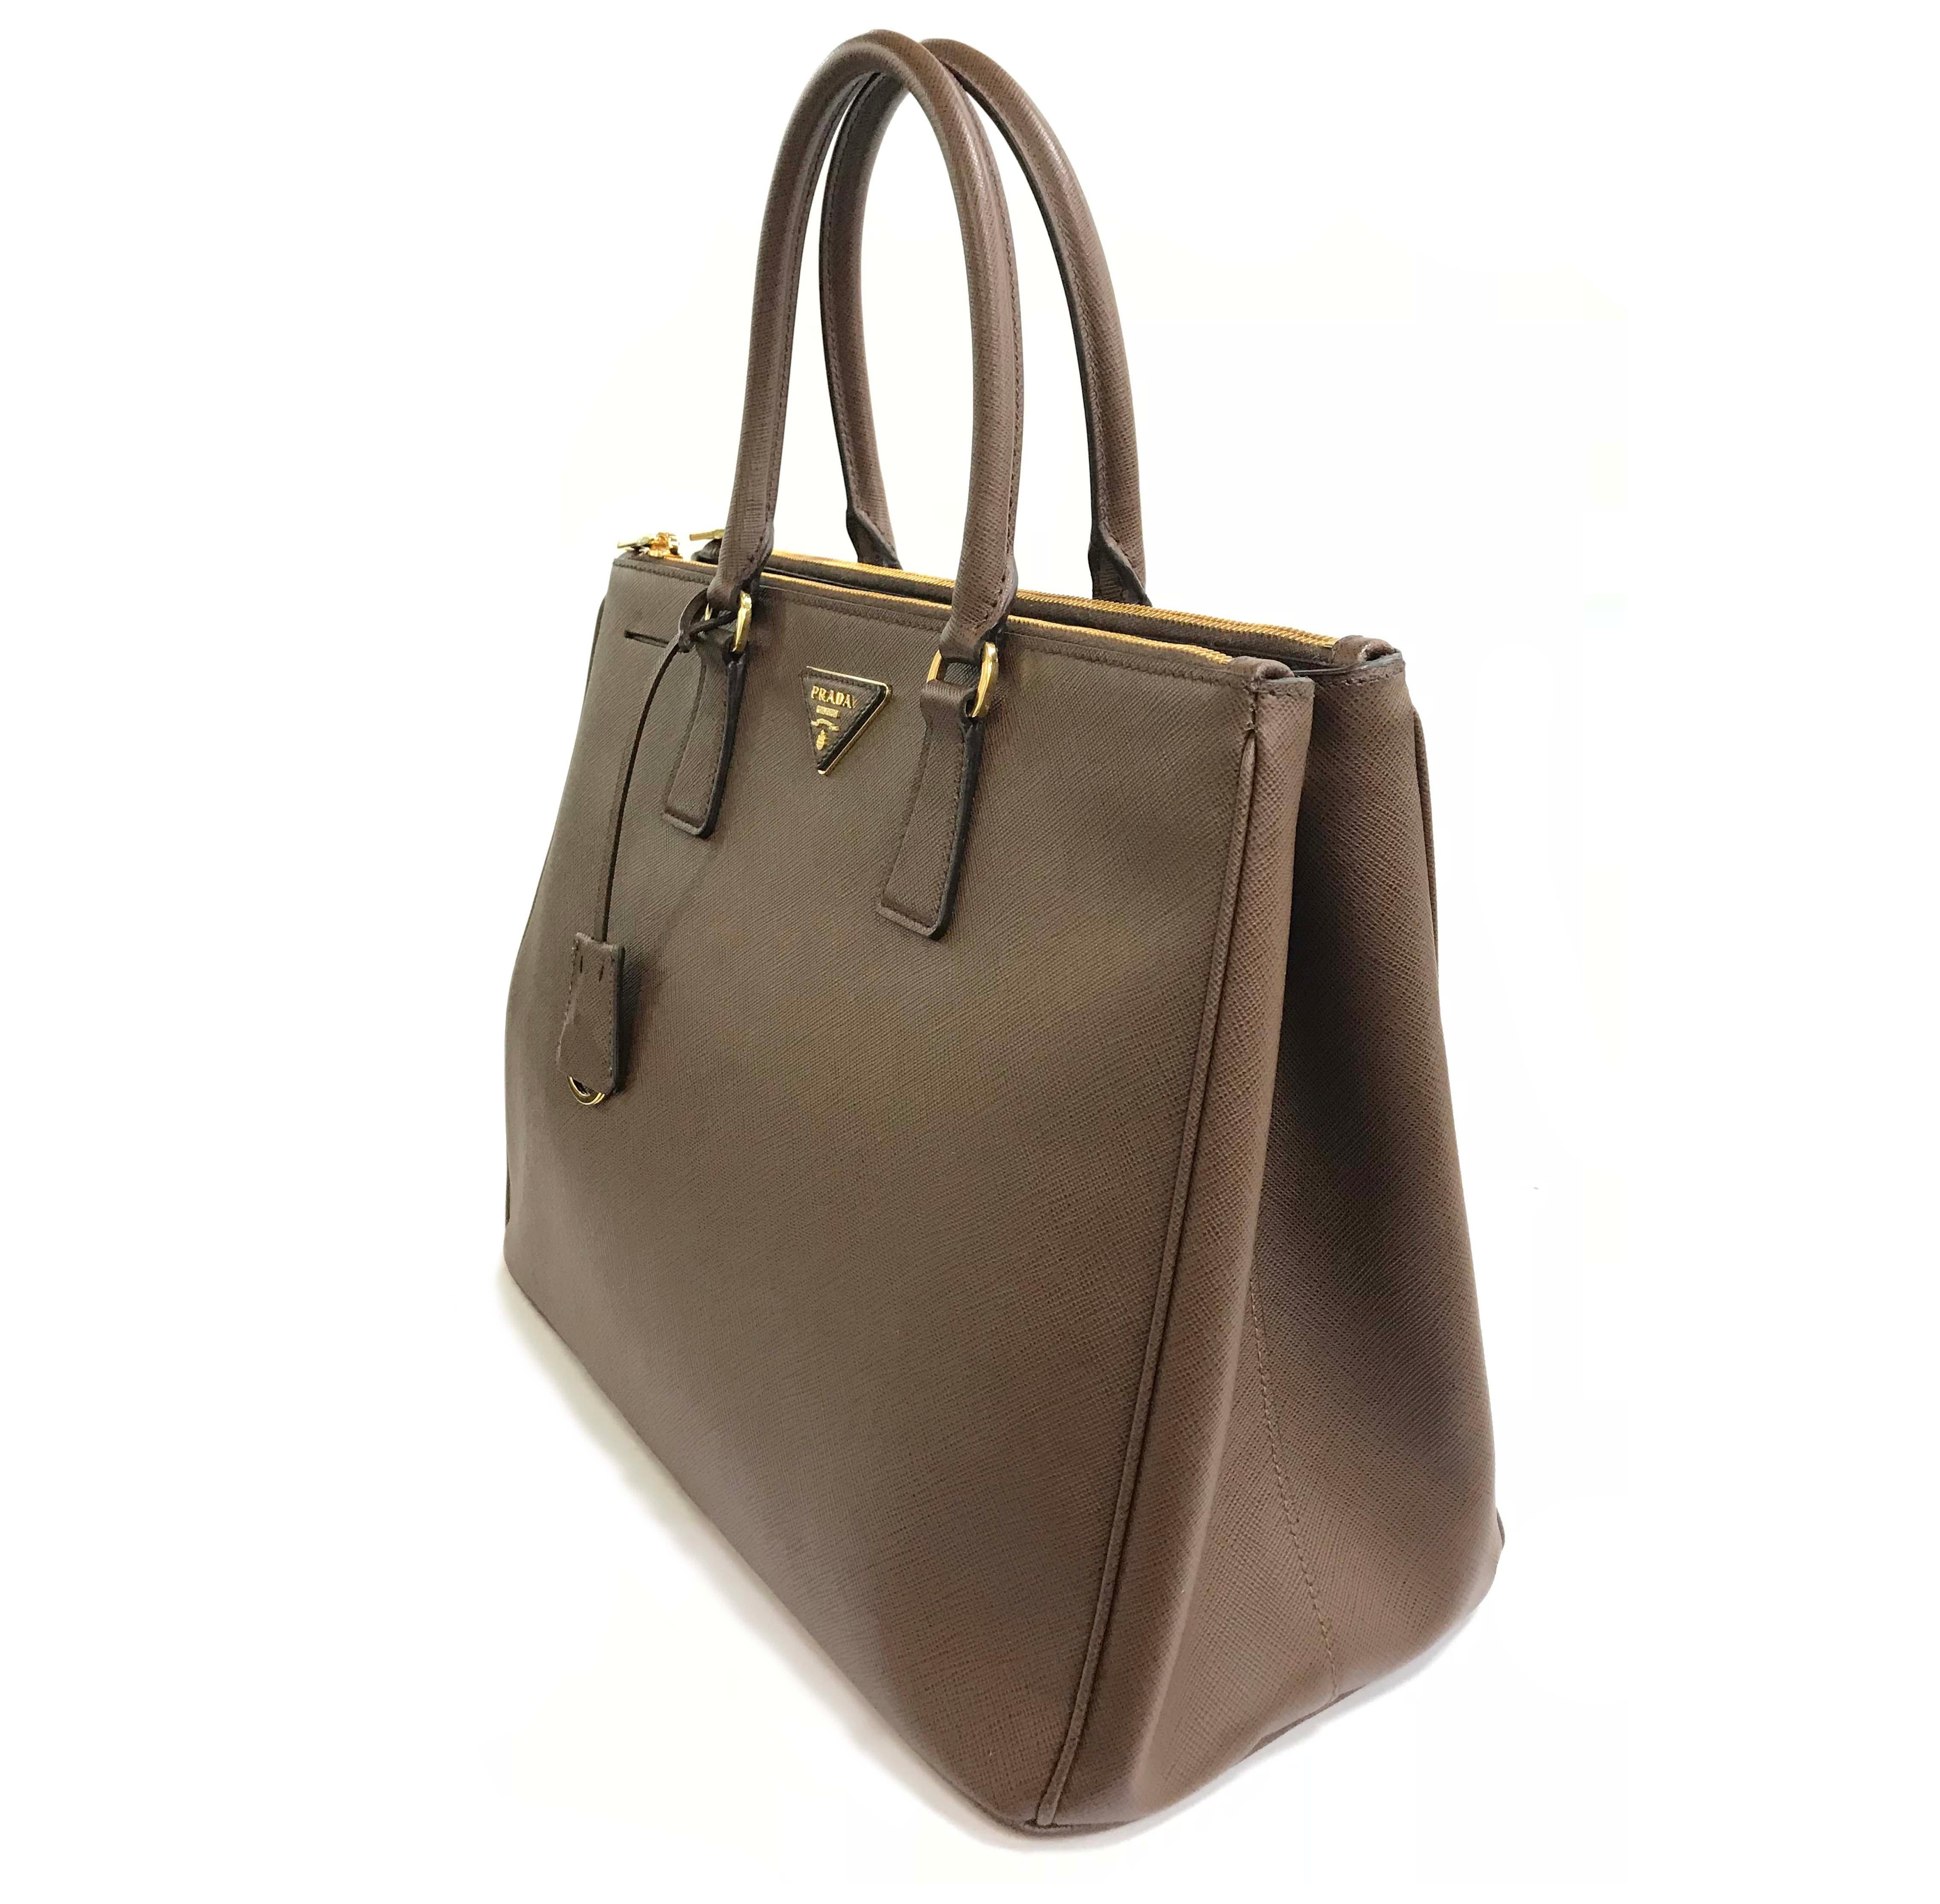 a7929c9983d9 Prada Galleria 1BA786 Large Saffiano Tote Women's Bag For Sale at 1stdibs